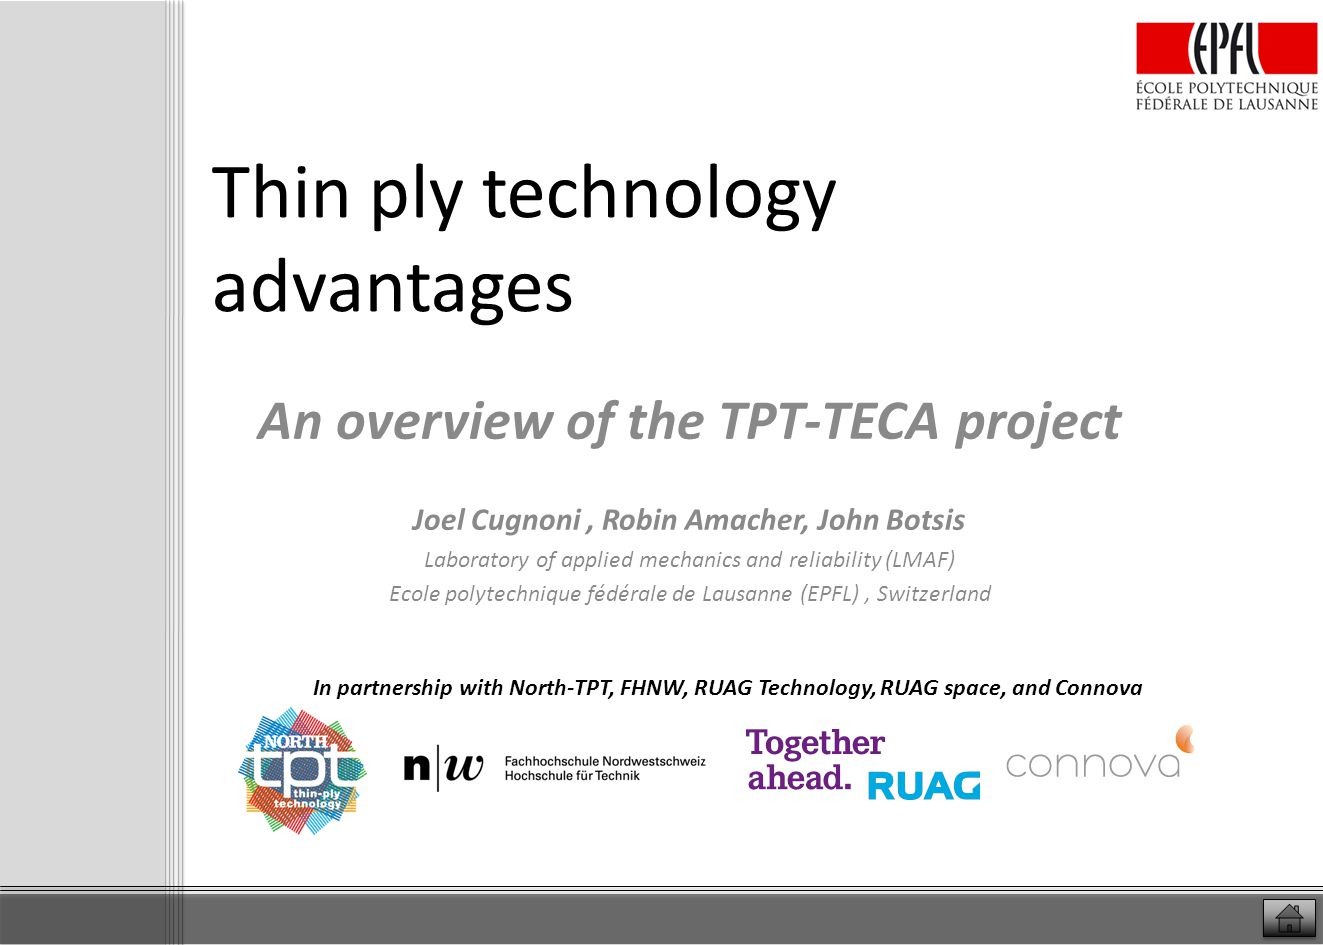 Introduction to Project TPT-TECA Swiss industry-academic project with 4 companies and 2 academic partners: o North TPT, Connova, RUAG Technology, RUAG Space, EPFL, FHNW (2012-3.2014) Goal o Characterize, optimize and demonstrate the technical and economical advantages of the Thin-ply technology developed by North TPT Scientific & technical objectives o fully characterize and optimize two TPT thin ply composite materials, and their processing parameters: M55/cyanate-ester for autoclave production and high Tg and M40JB / TP80ep epoxy for low temperature, autoclave or out-of-autoclave process o evaluation of the ply size effects and determination of the optimal ply thickness with respect to mechanical performance o complete material characterization and evaluation of the predictability of the performance of the final composite parts o design optimization using the flexibility of thin ply technology and production of two benchmark parts to compare the performance and system cost